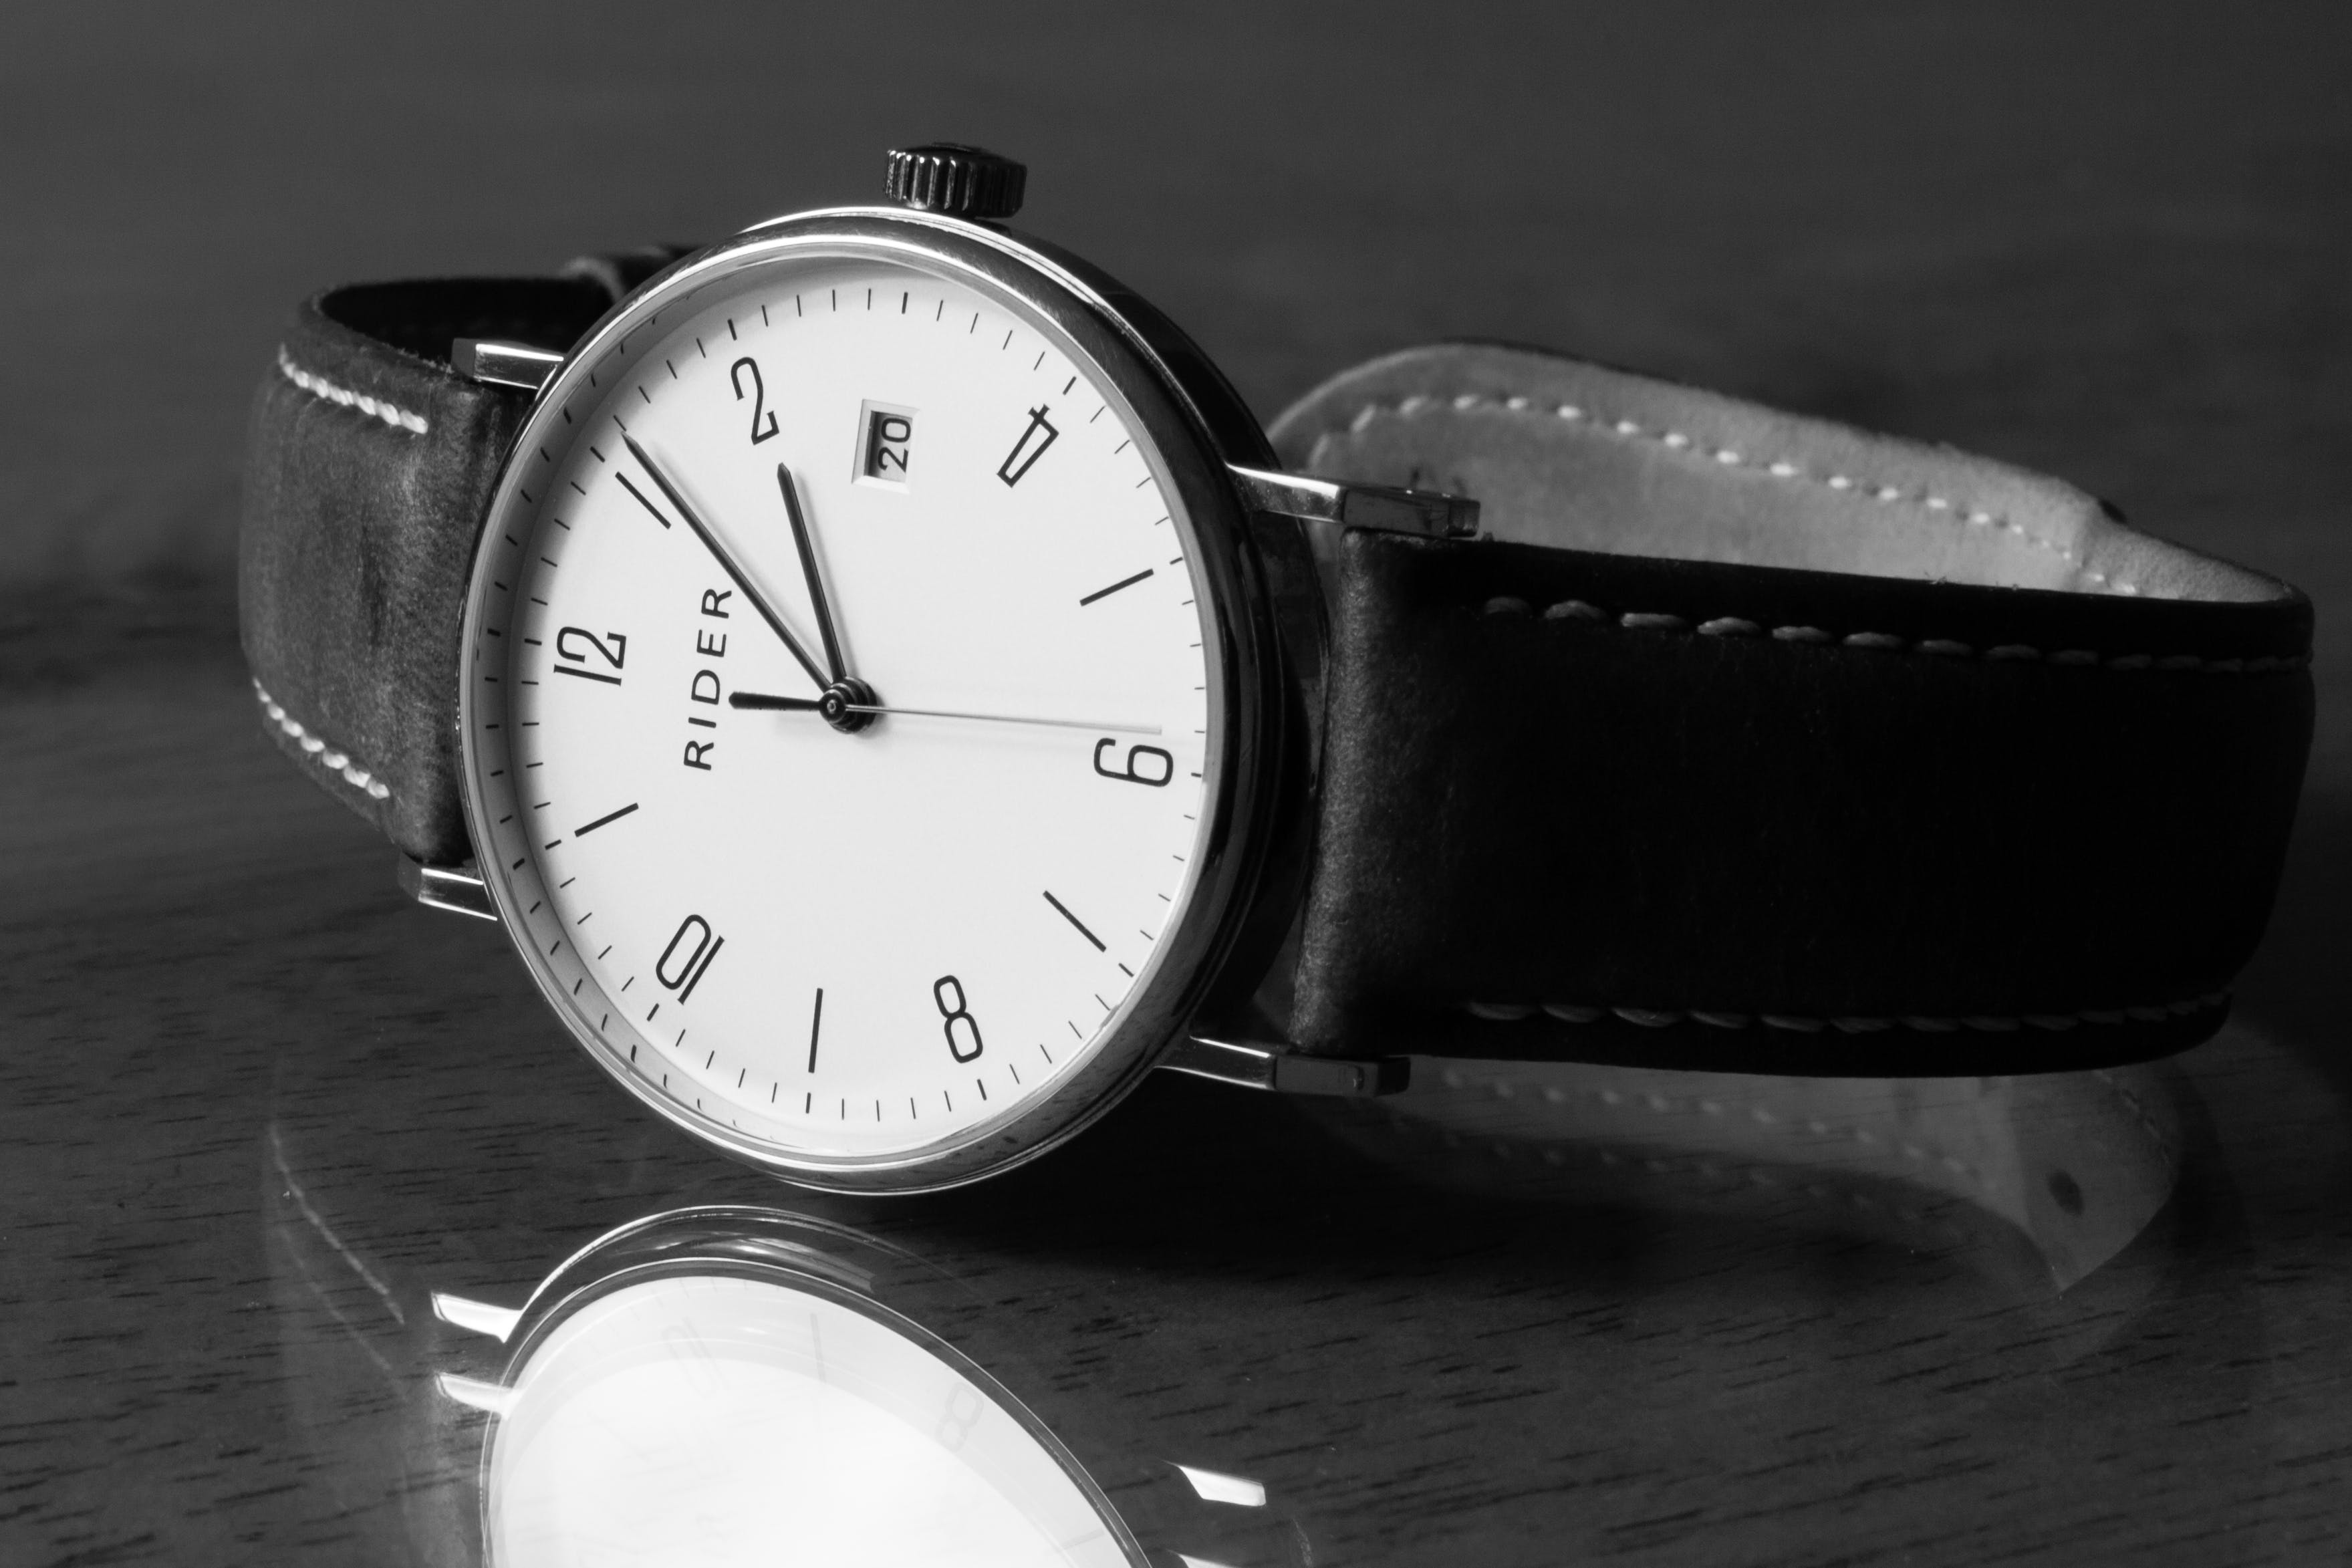 Analog watch, black and white, time